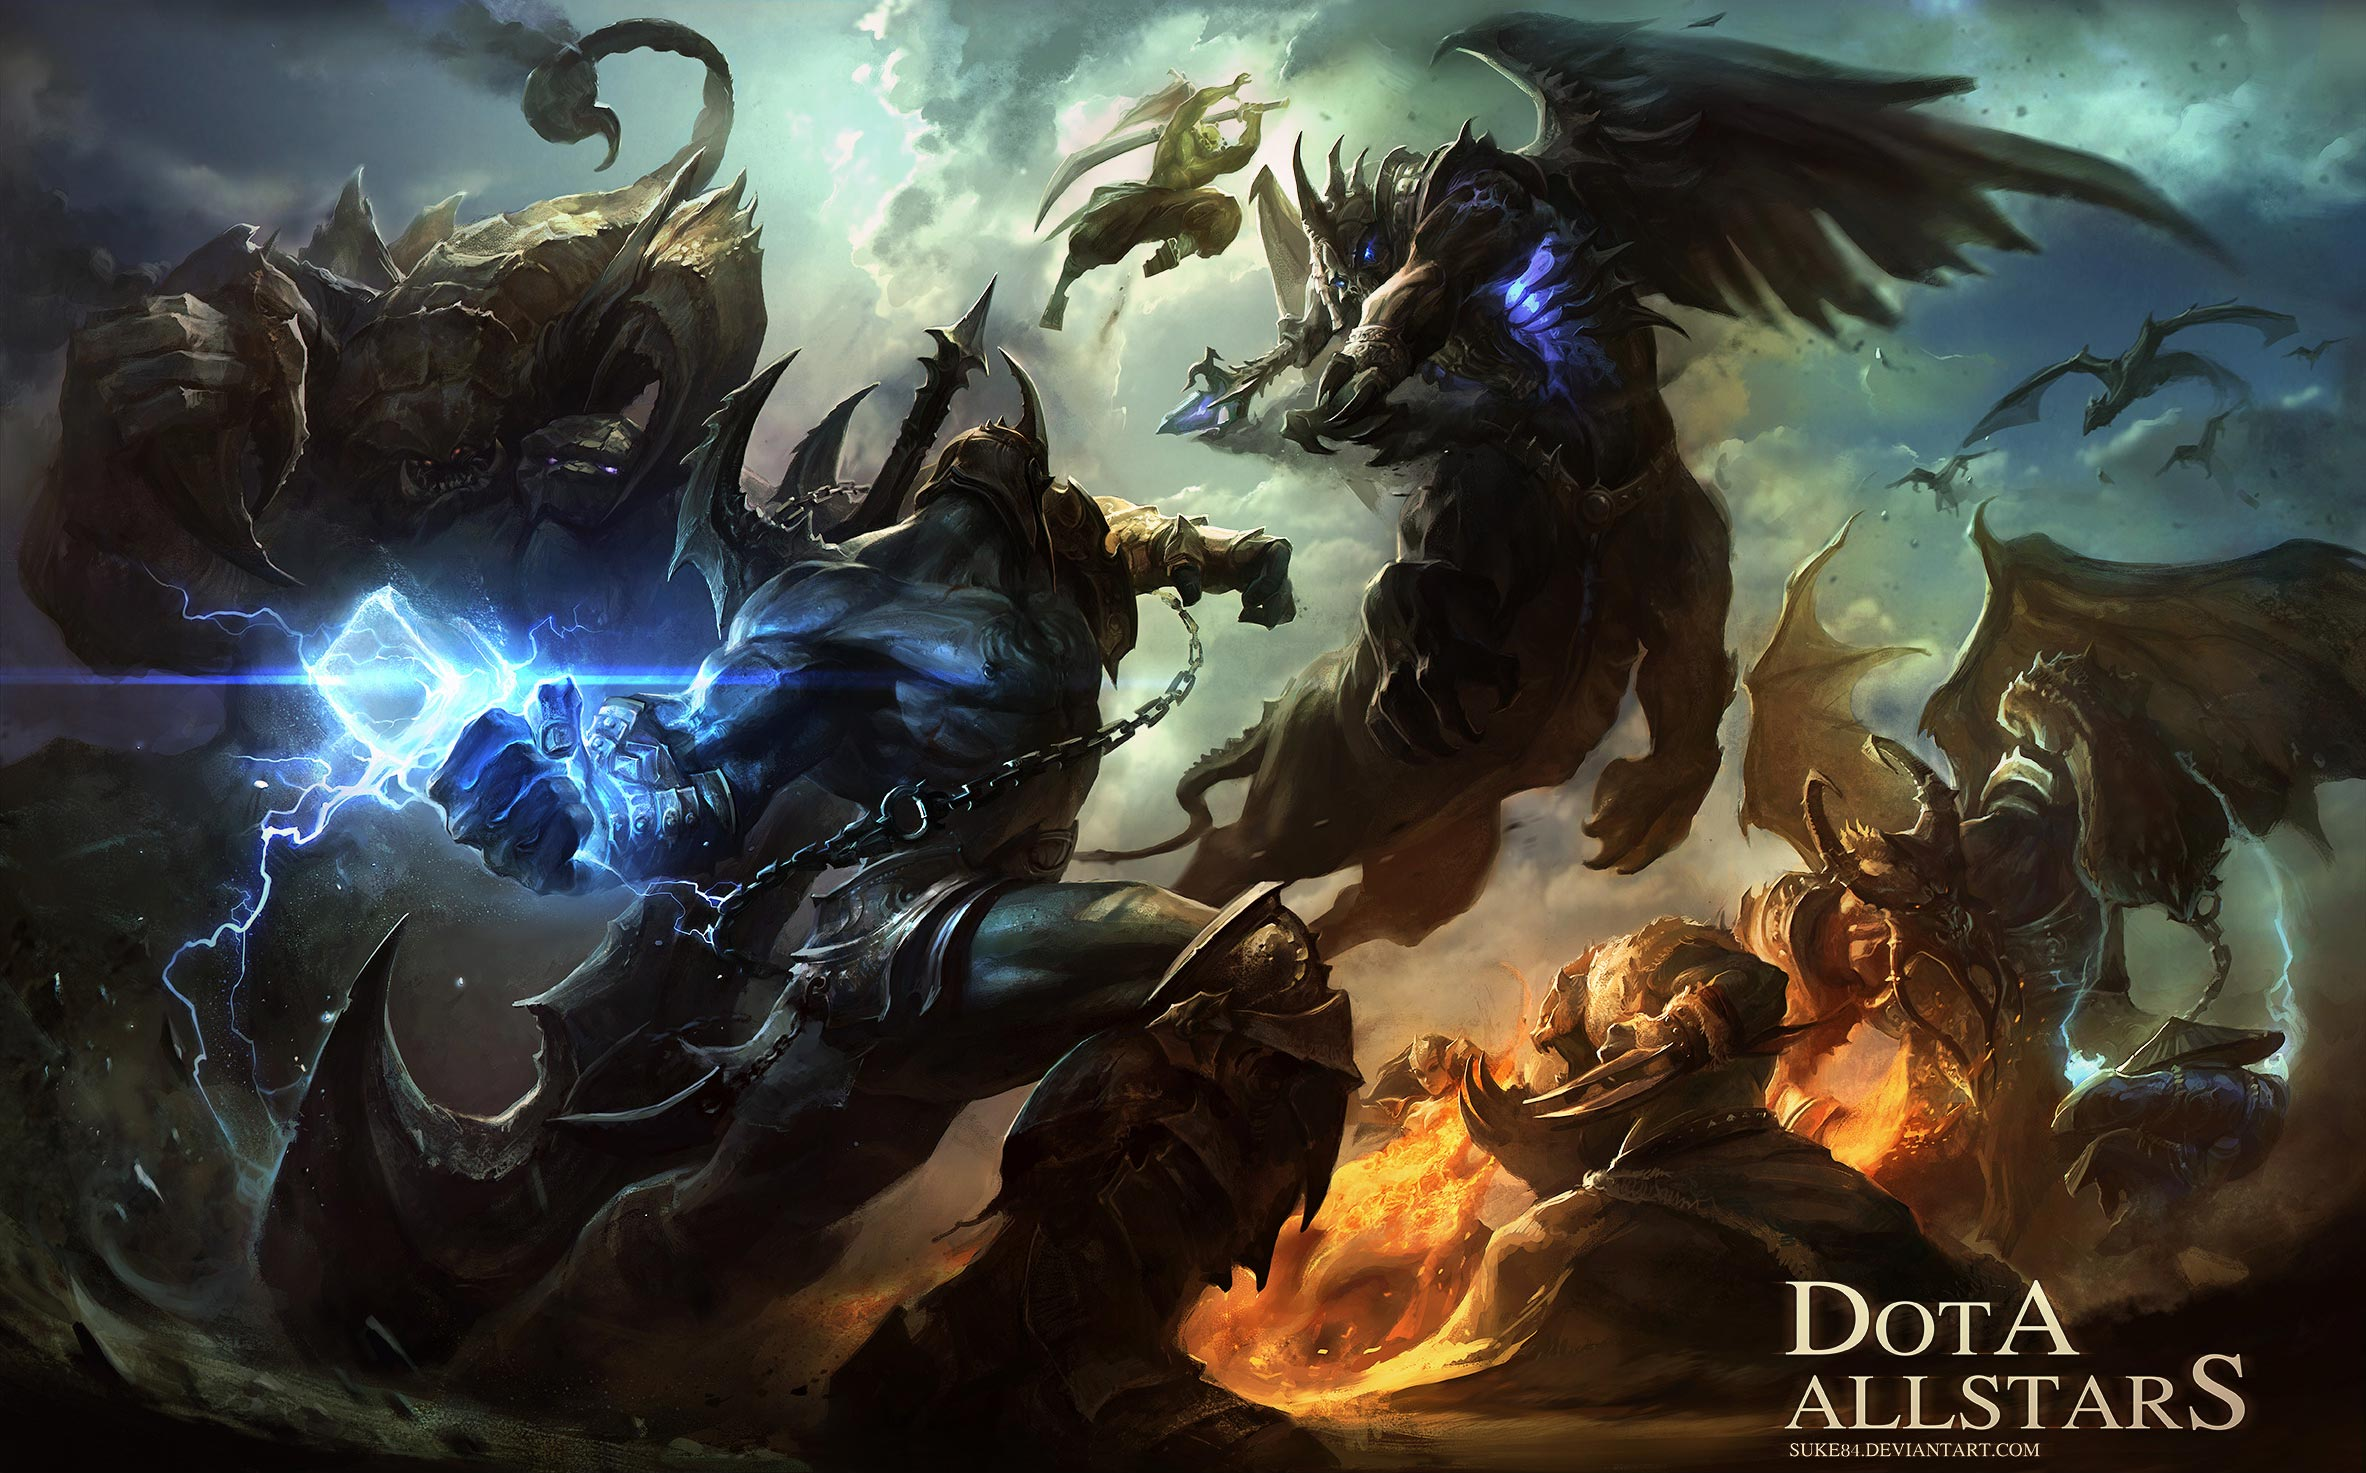 Dota 6.83d Ai artwork wallpaper